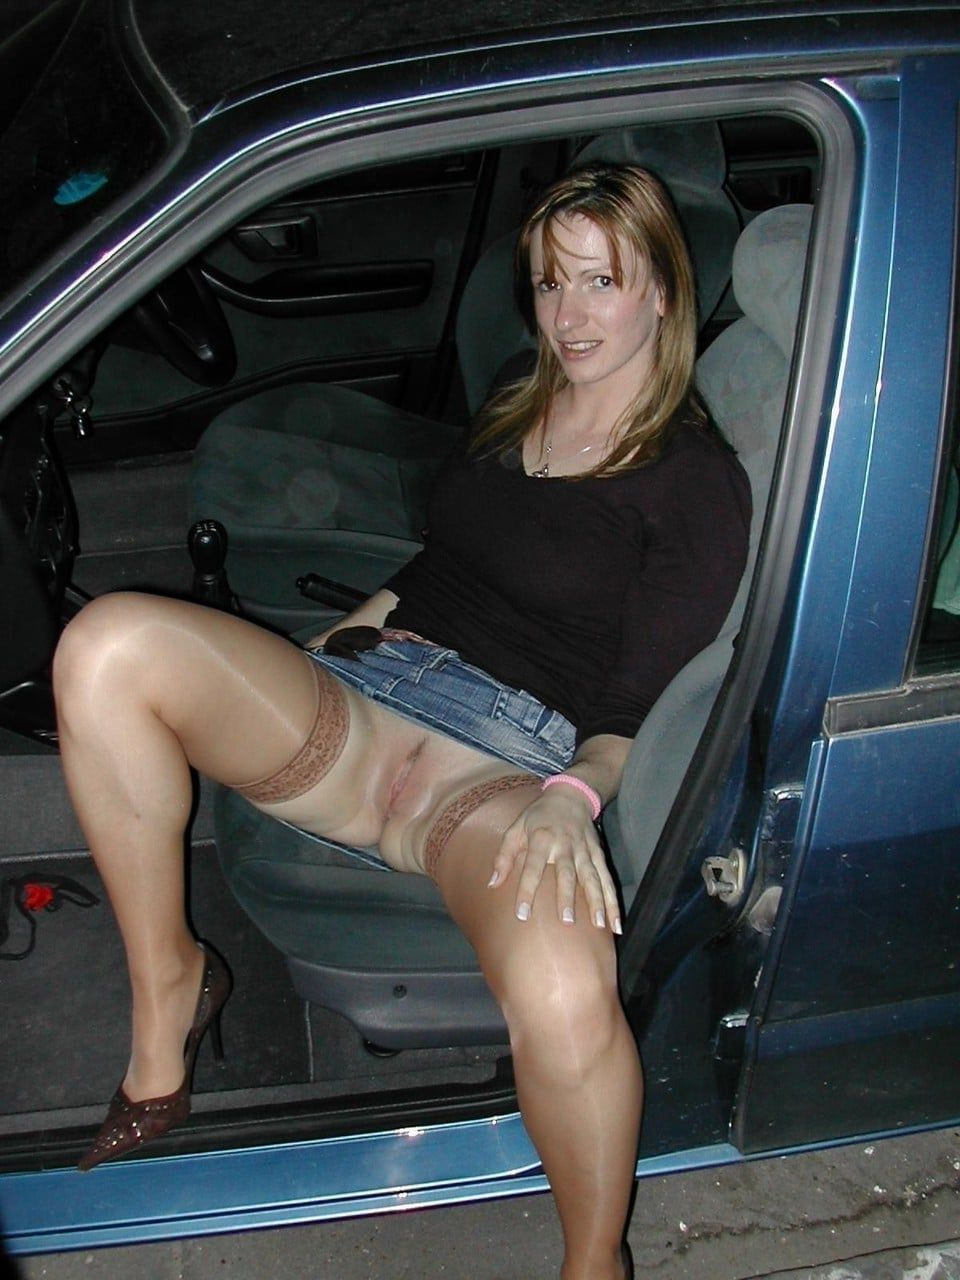 Amateur wife flashing upskirt no panties